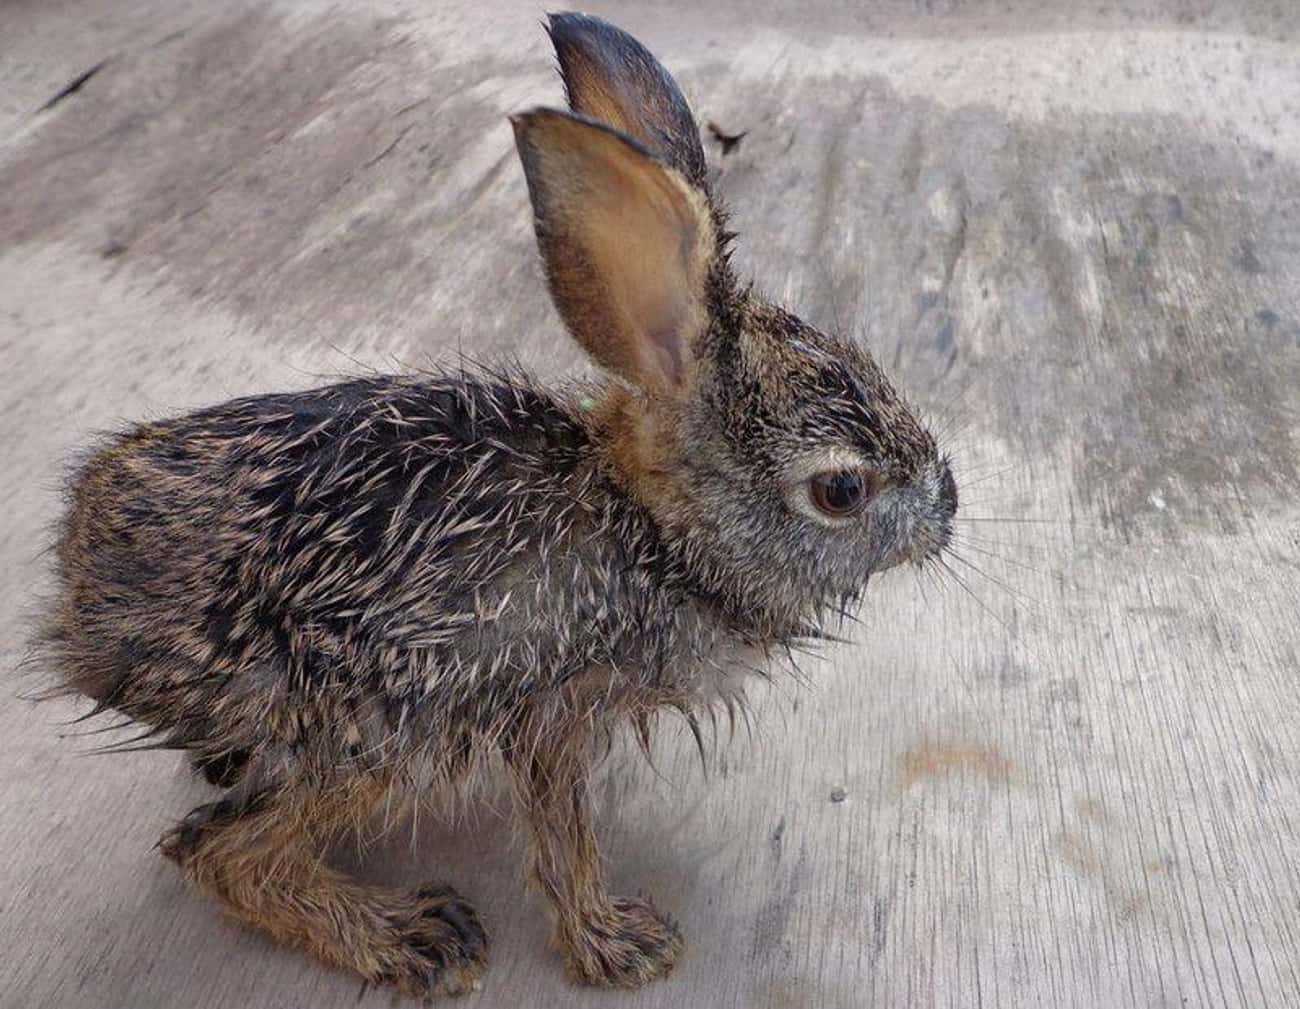 Monty Python Rabbit Threatens  is listed (or ranked) 3 on the list 19 Cute Animals That Look Scary When They're Soaking Wet